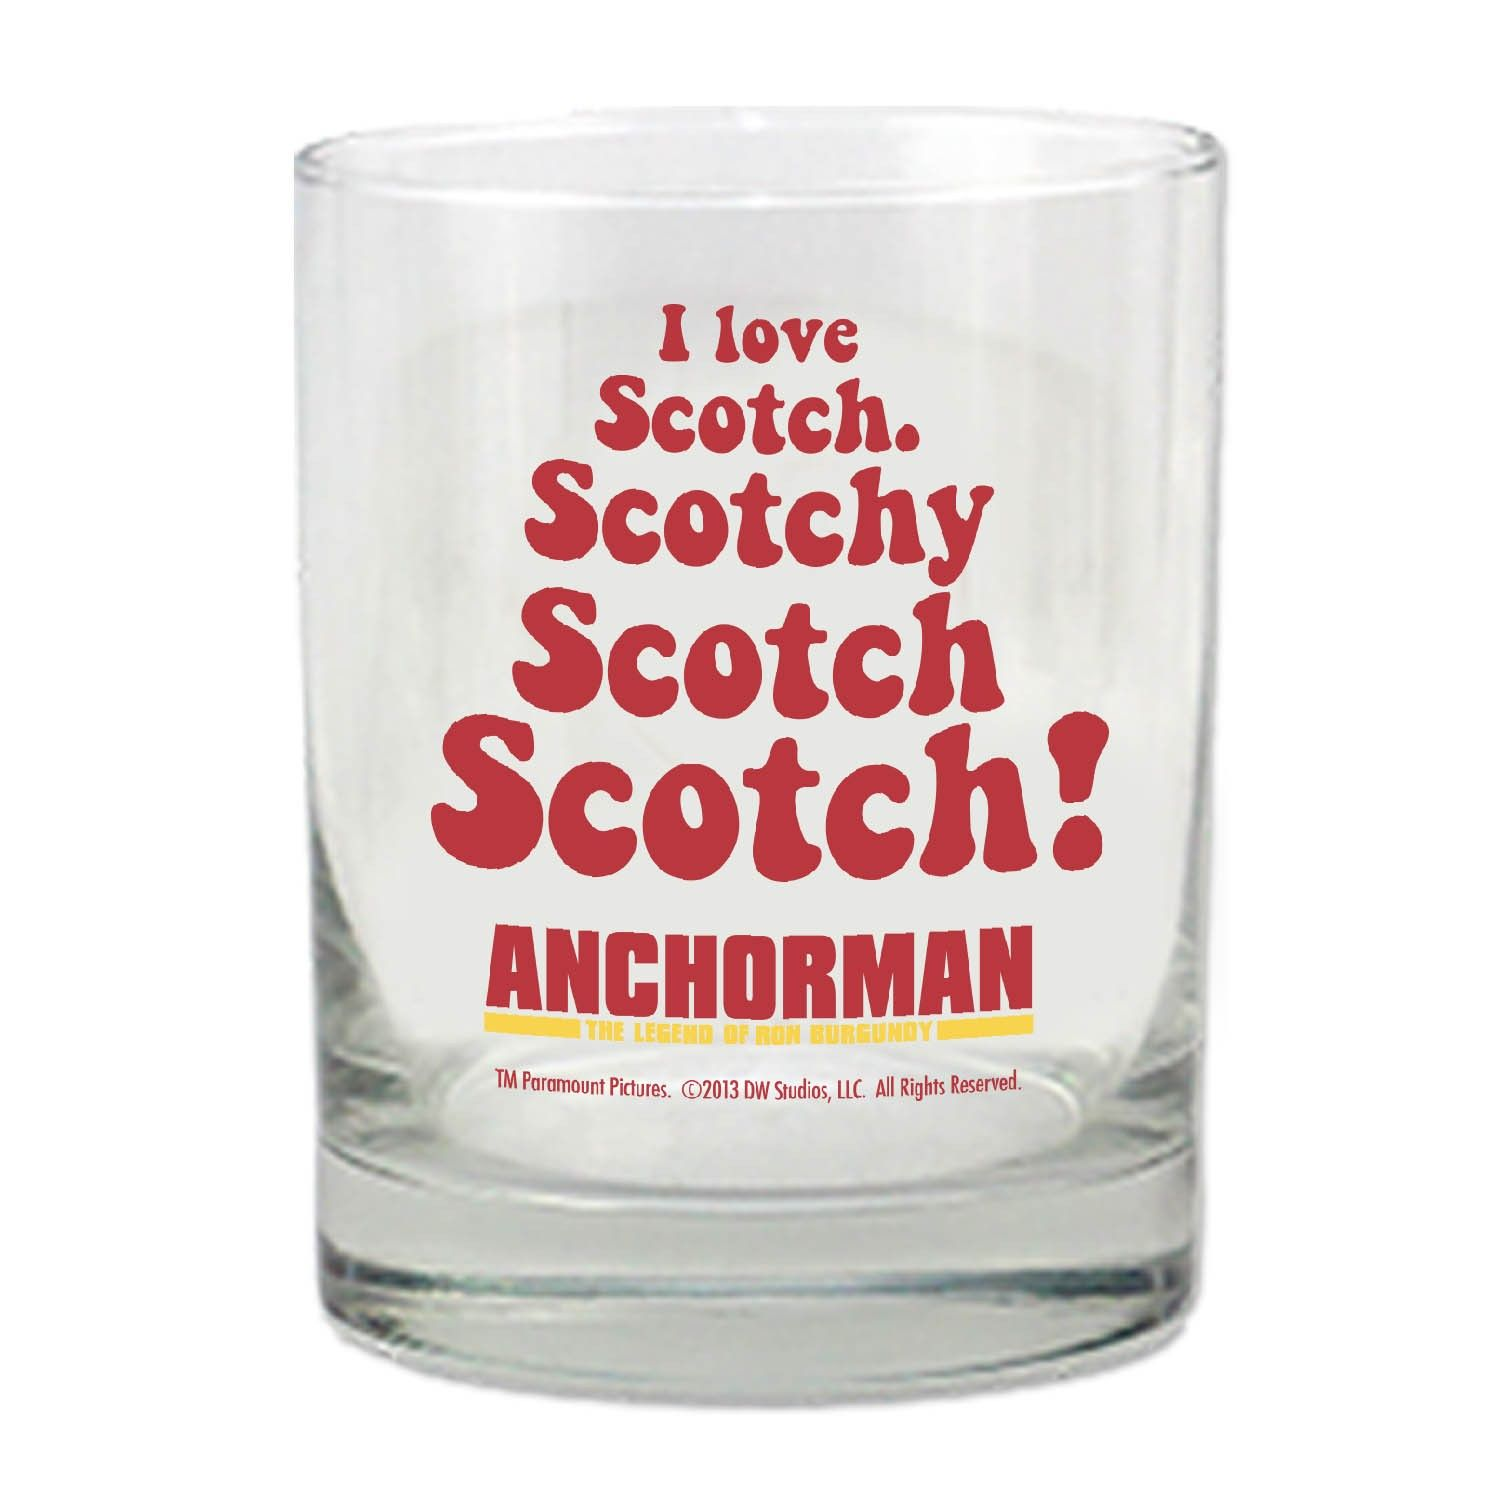 dear santa a set of these and some tasty scotchy scotch scotch to go in them thanks newseum online store anchorman scotch glass pinterest today - Scotch Glass